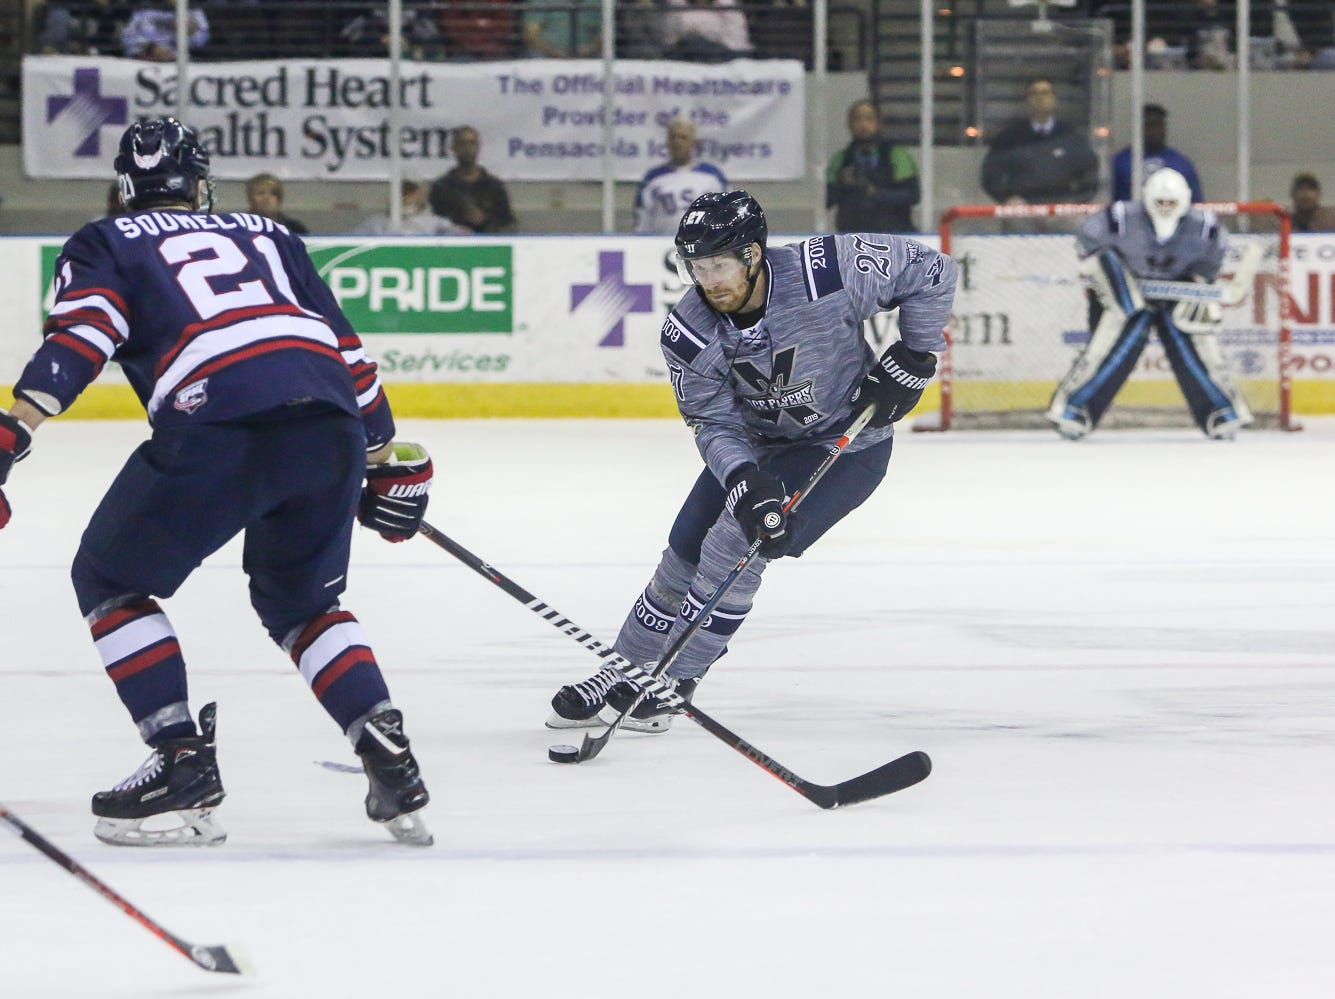 Pensacola's Jesse Kessler (27) moves the puck into the Macon zone during the last home game of the regular season at the Pensacola Bay Center on Saturday, March 23, 2019. With over 4,300 people in attendance for Pensacola's 3-1 victory, the Ice Flyers mark six straight years of over 100,000 people at their home games each season. The team has won their last five games in a row and will finish out their last five games on the road before entering the playoffs in a couple of weeks.